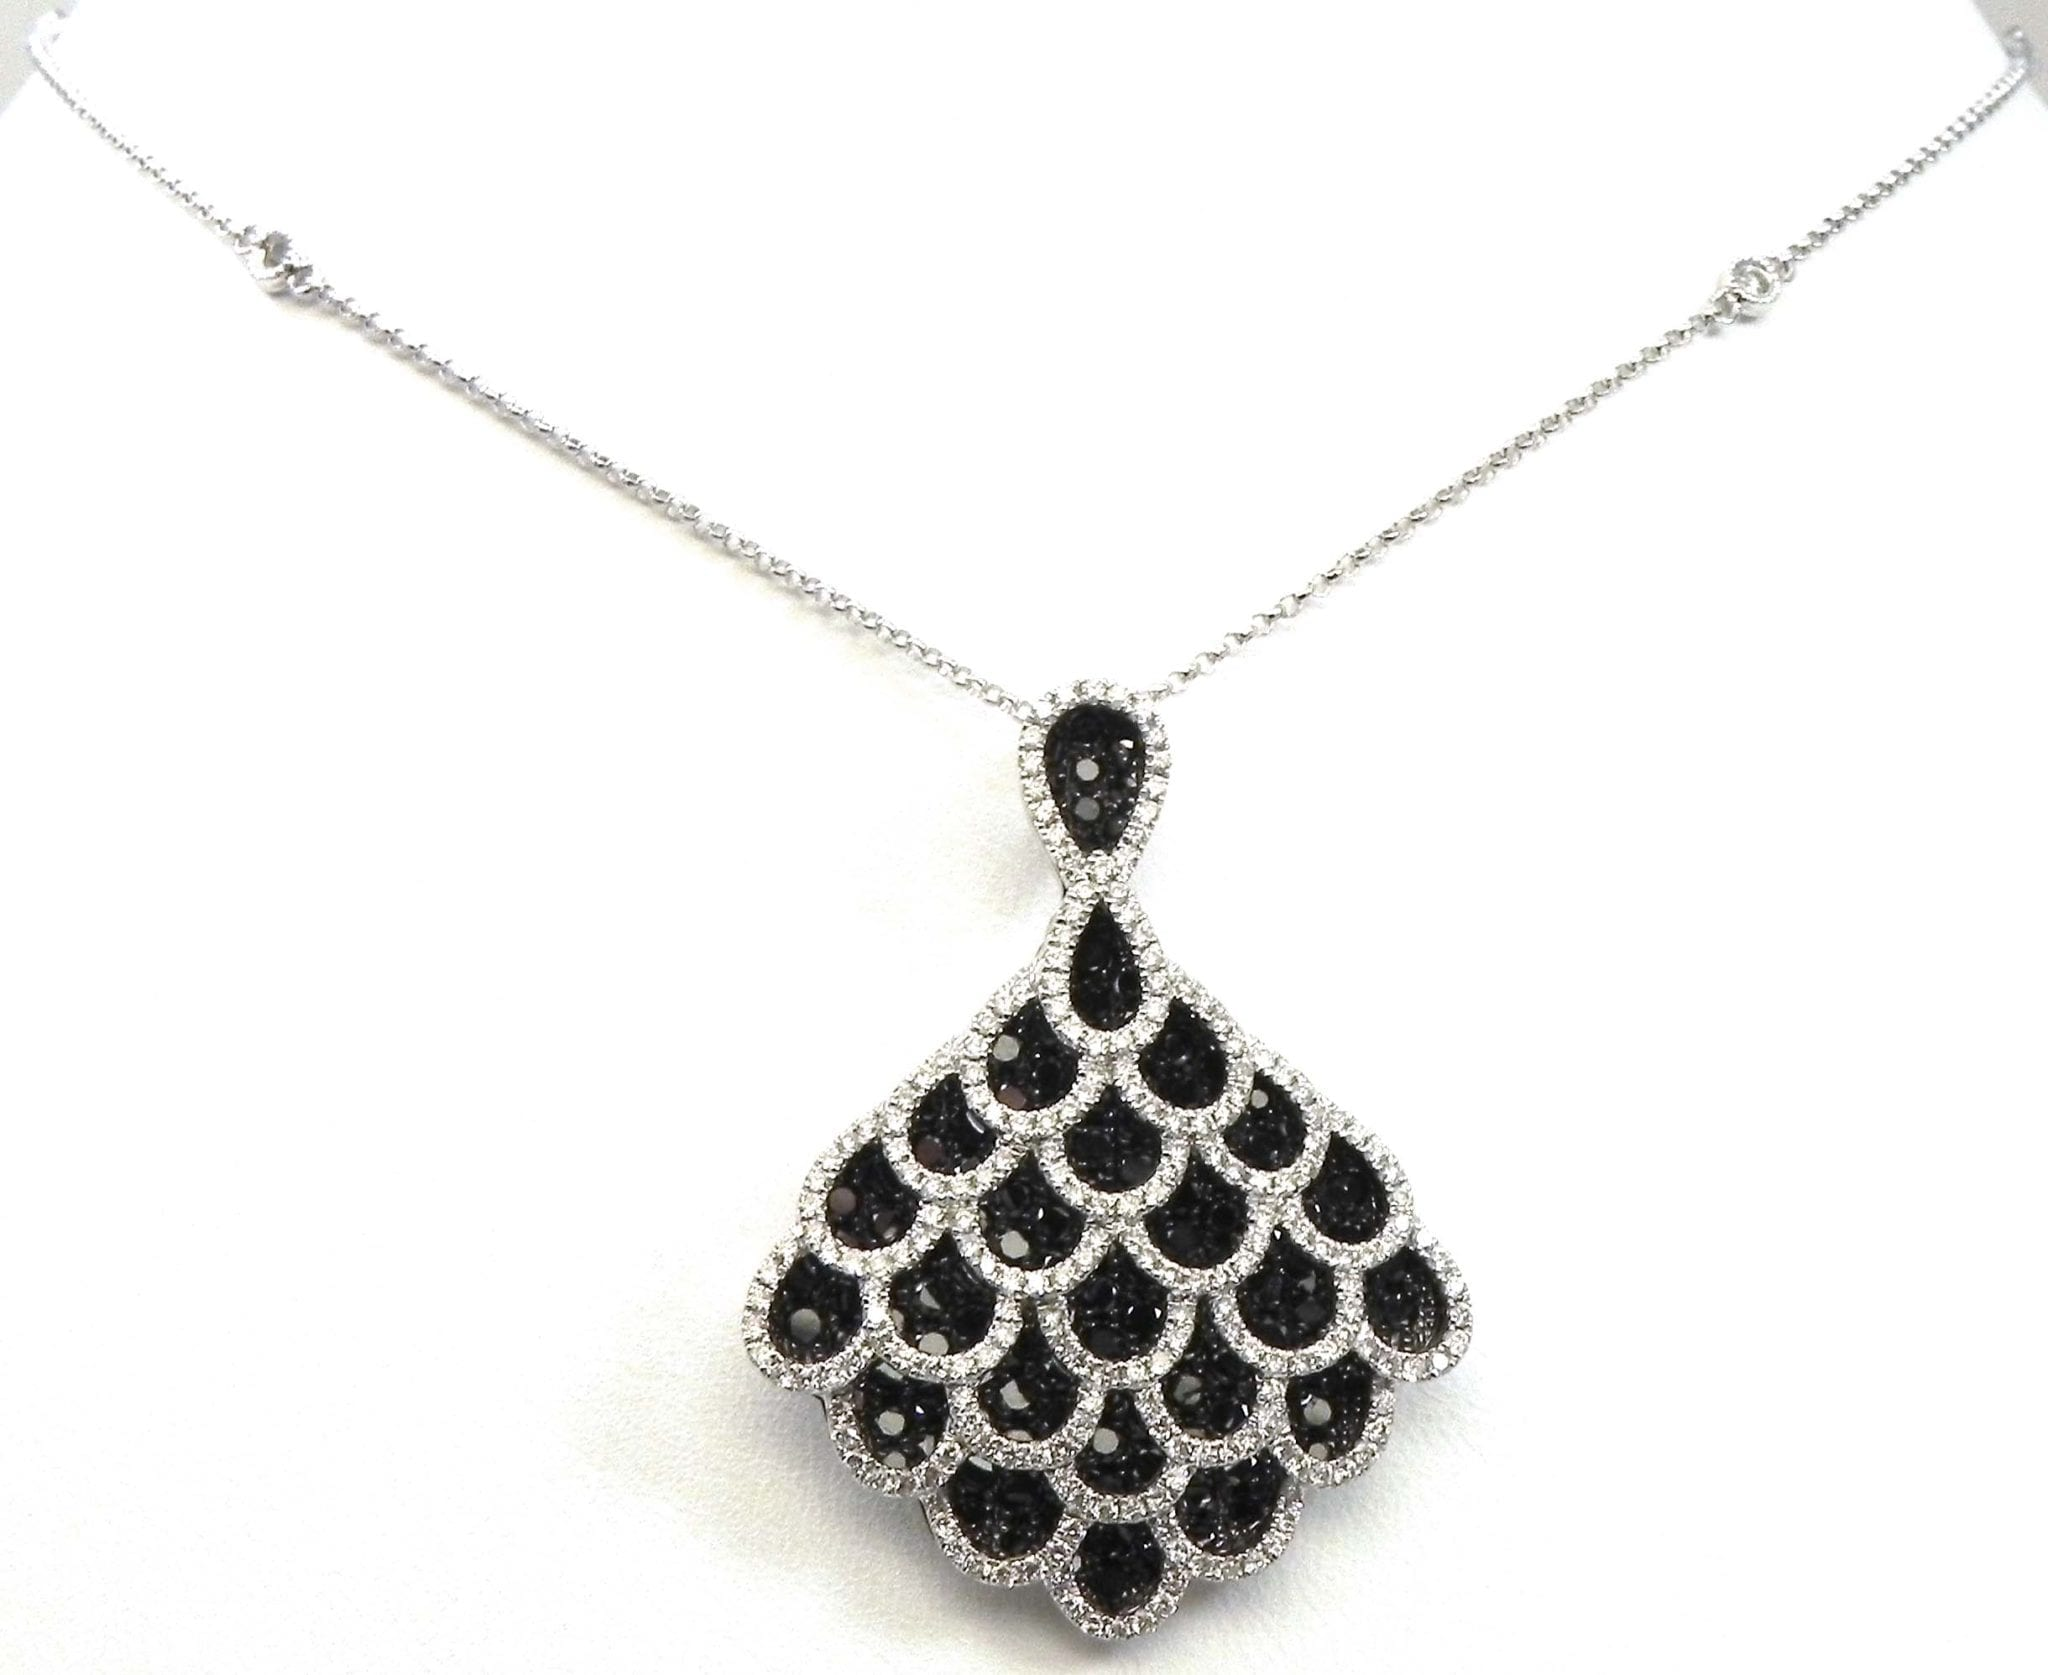 La s 18k White Gold 3 66 Cts White & Black Diamonds Peacock